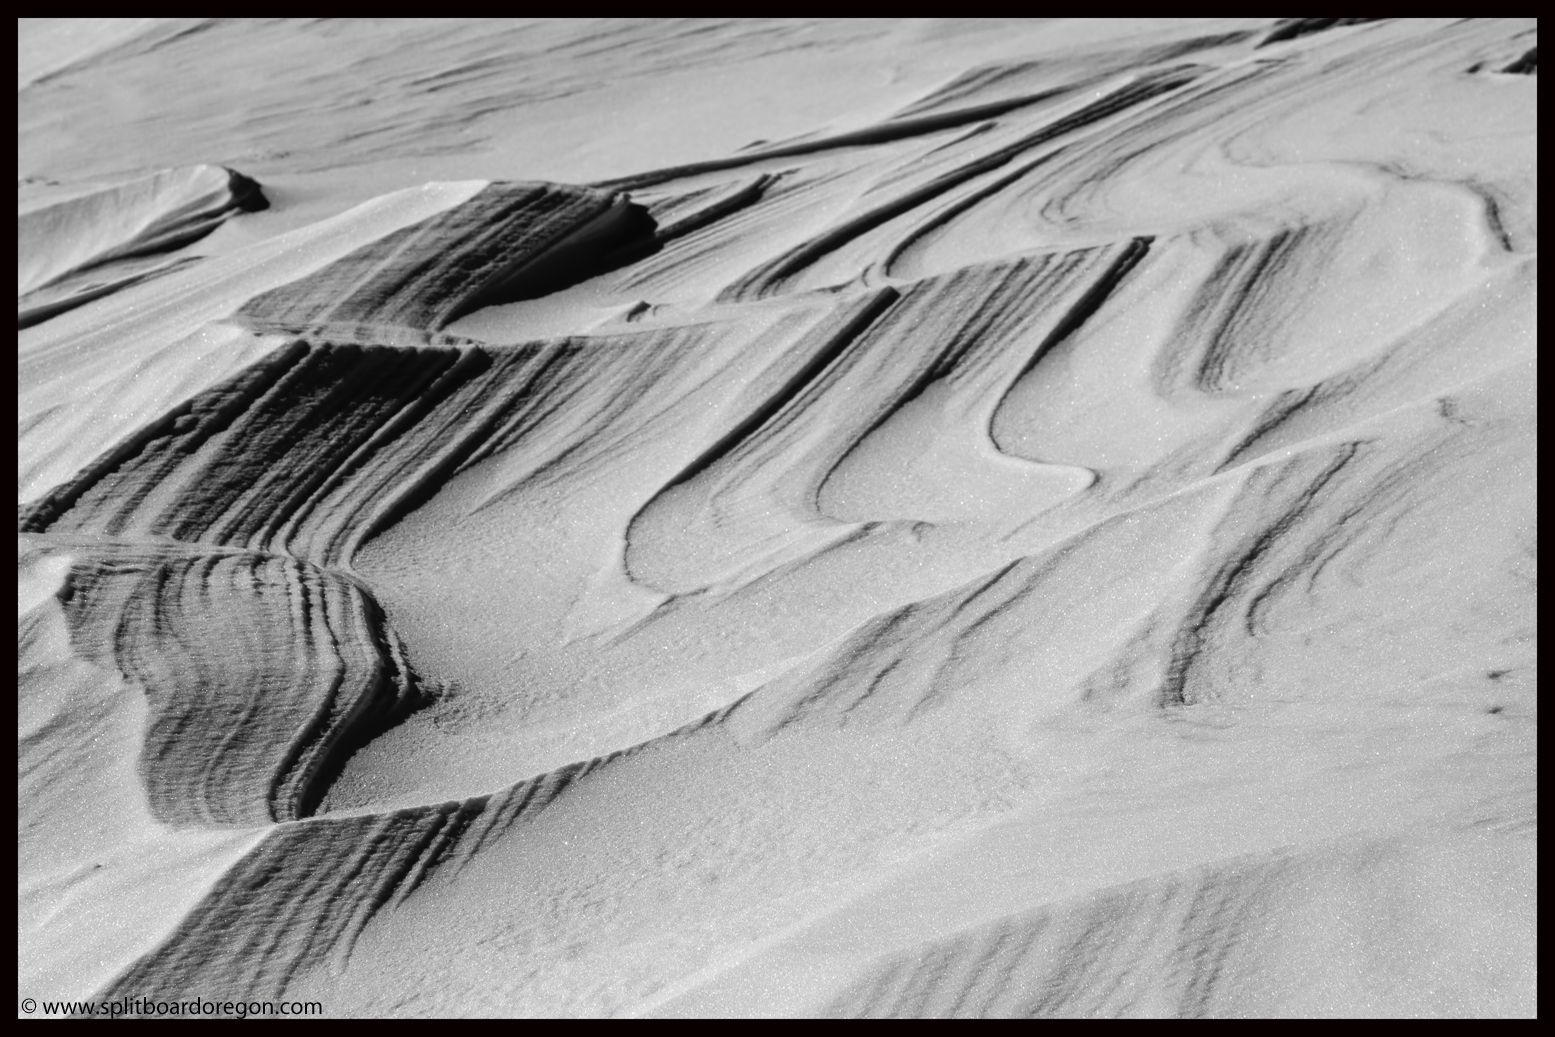 The wind's work on the snow